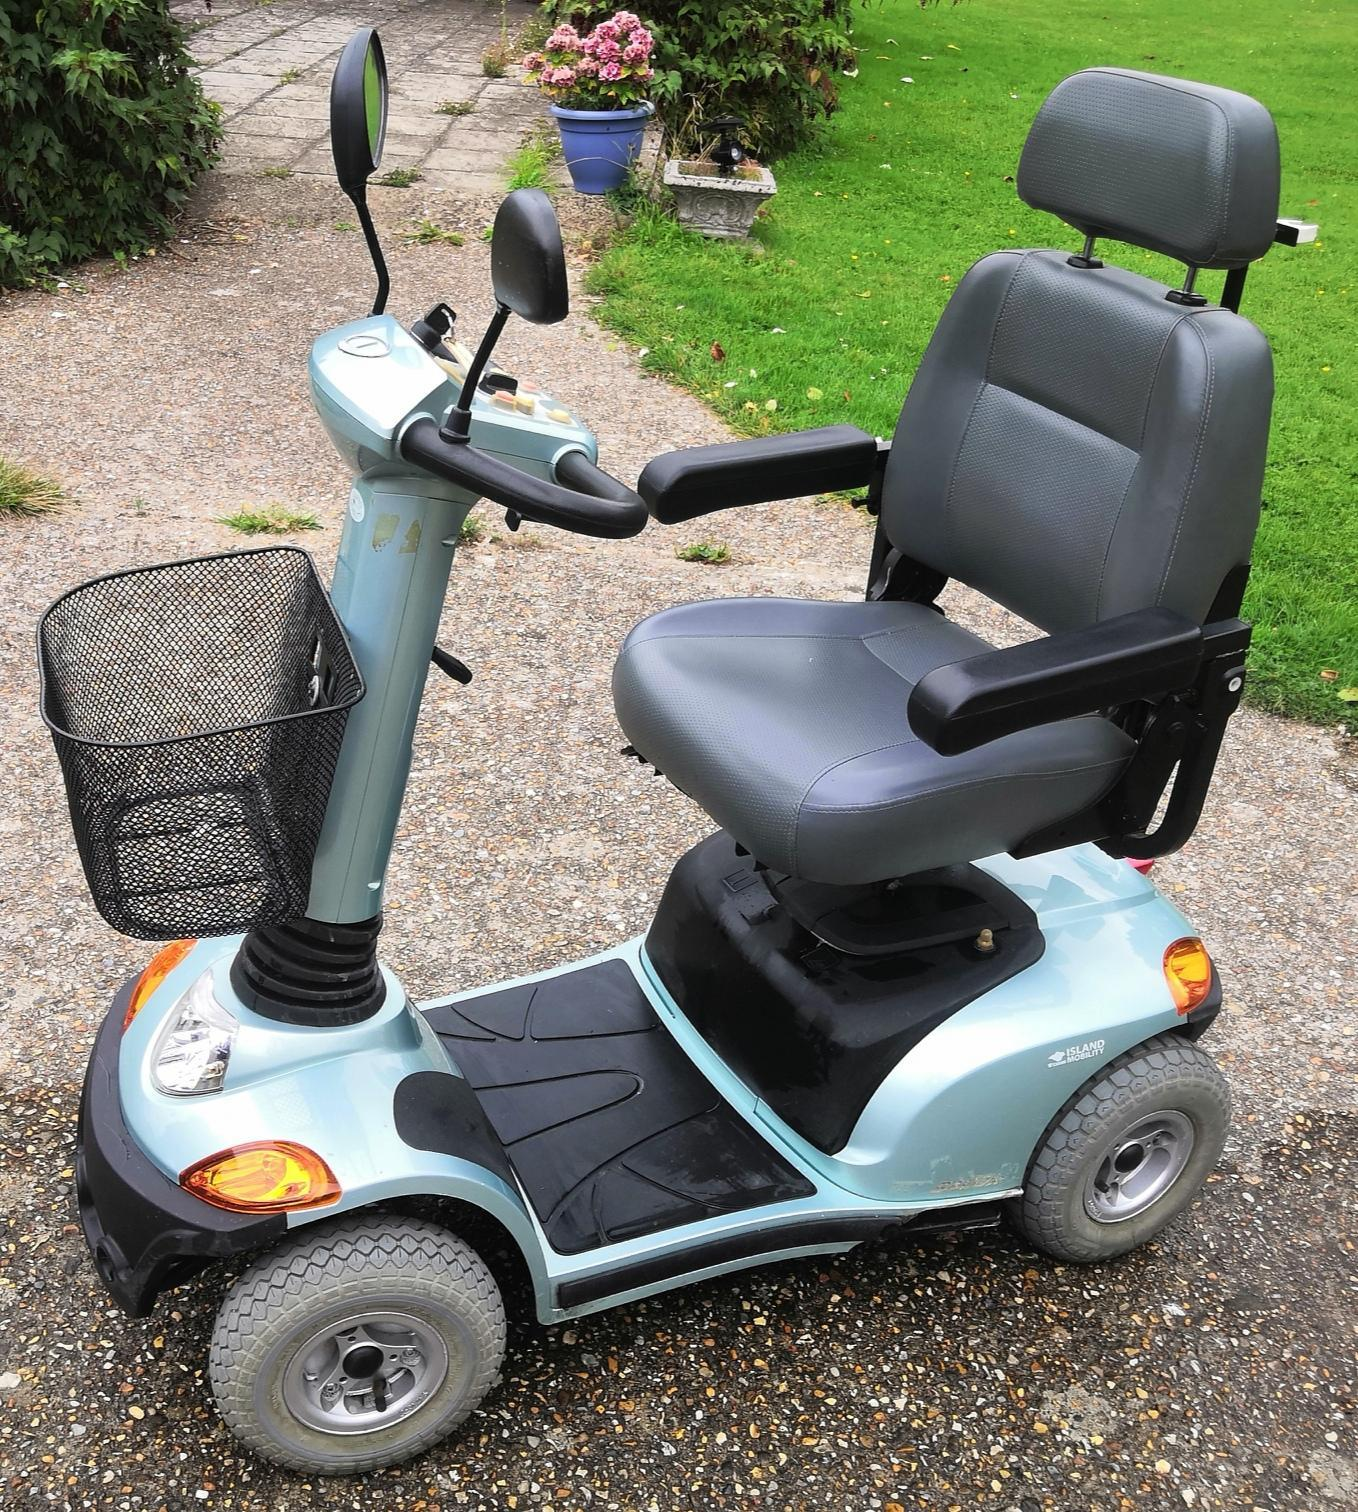 Mobility scooter with spare key and manuals and charger